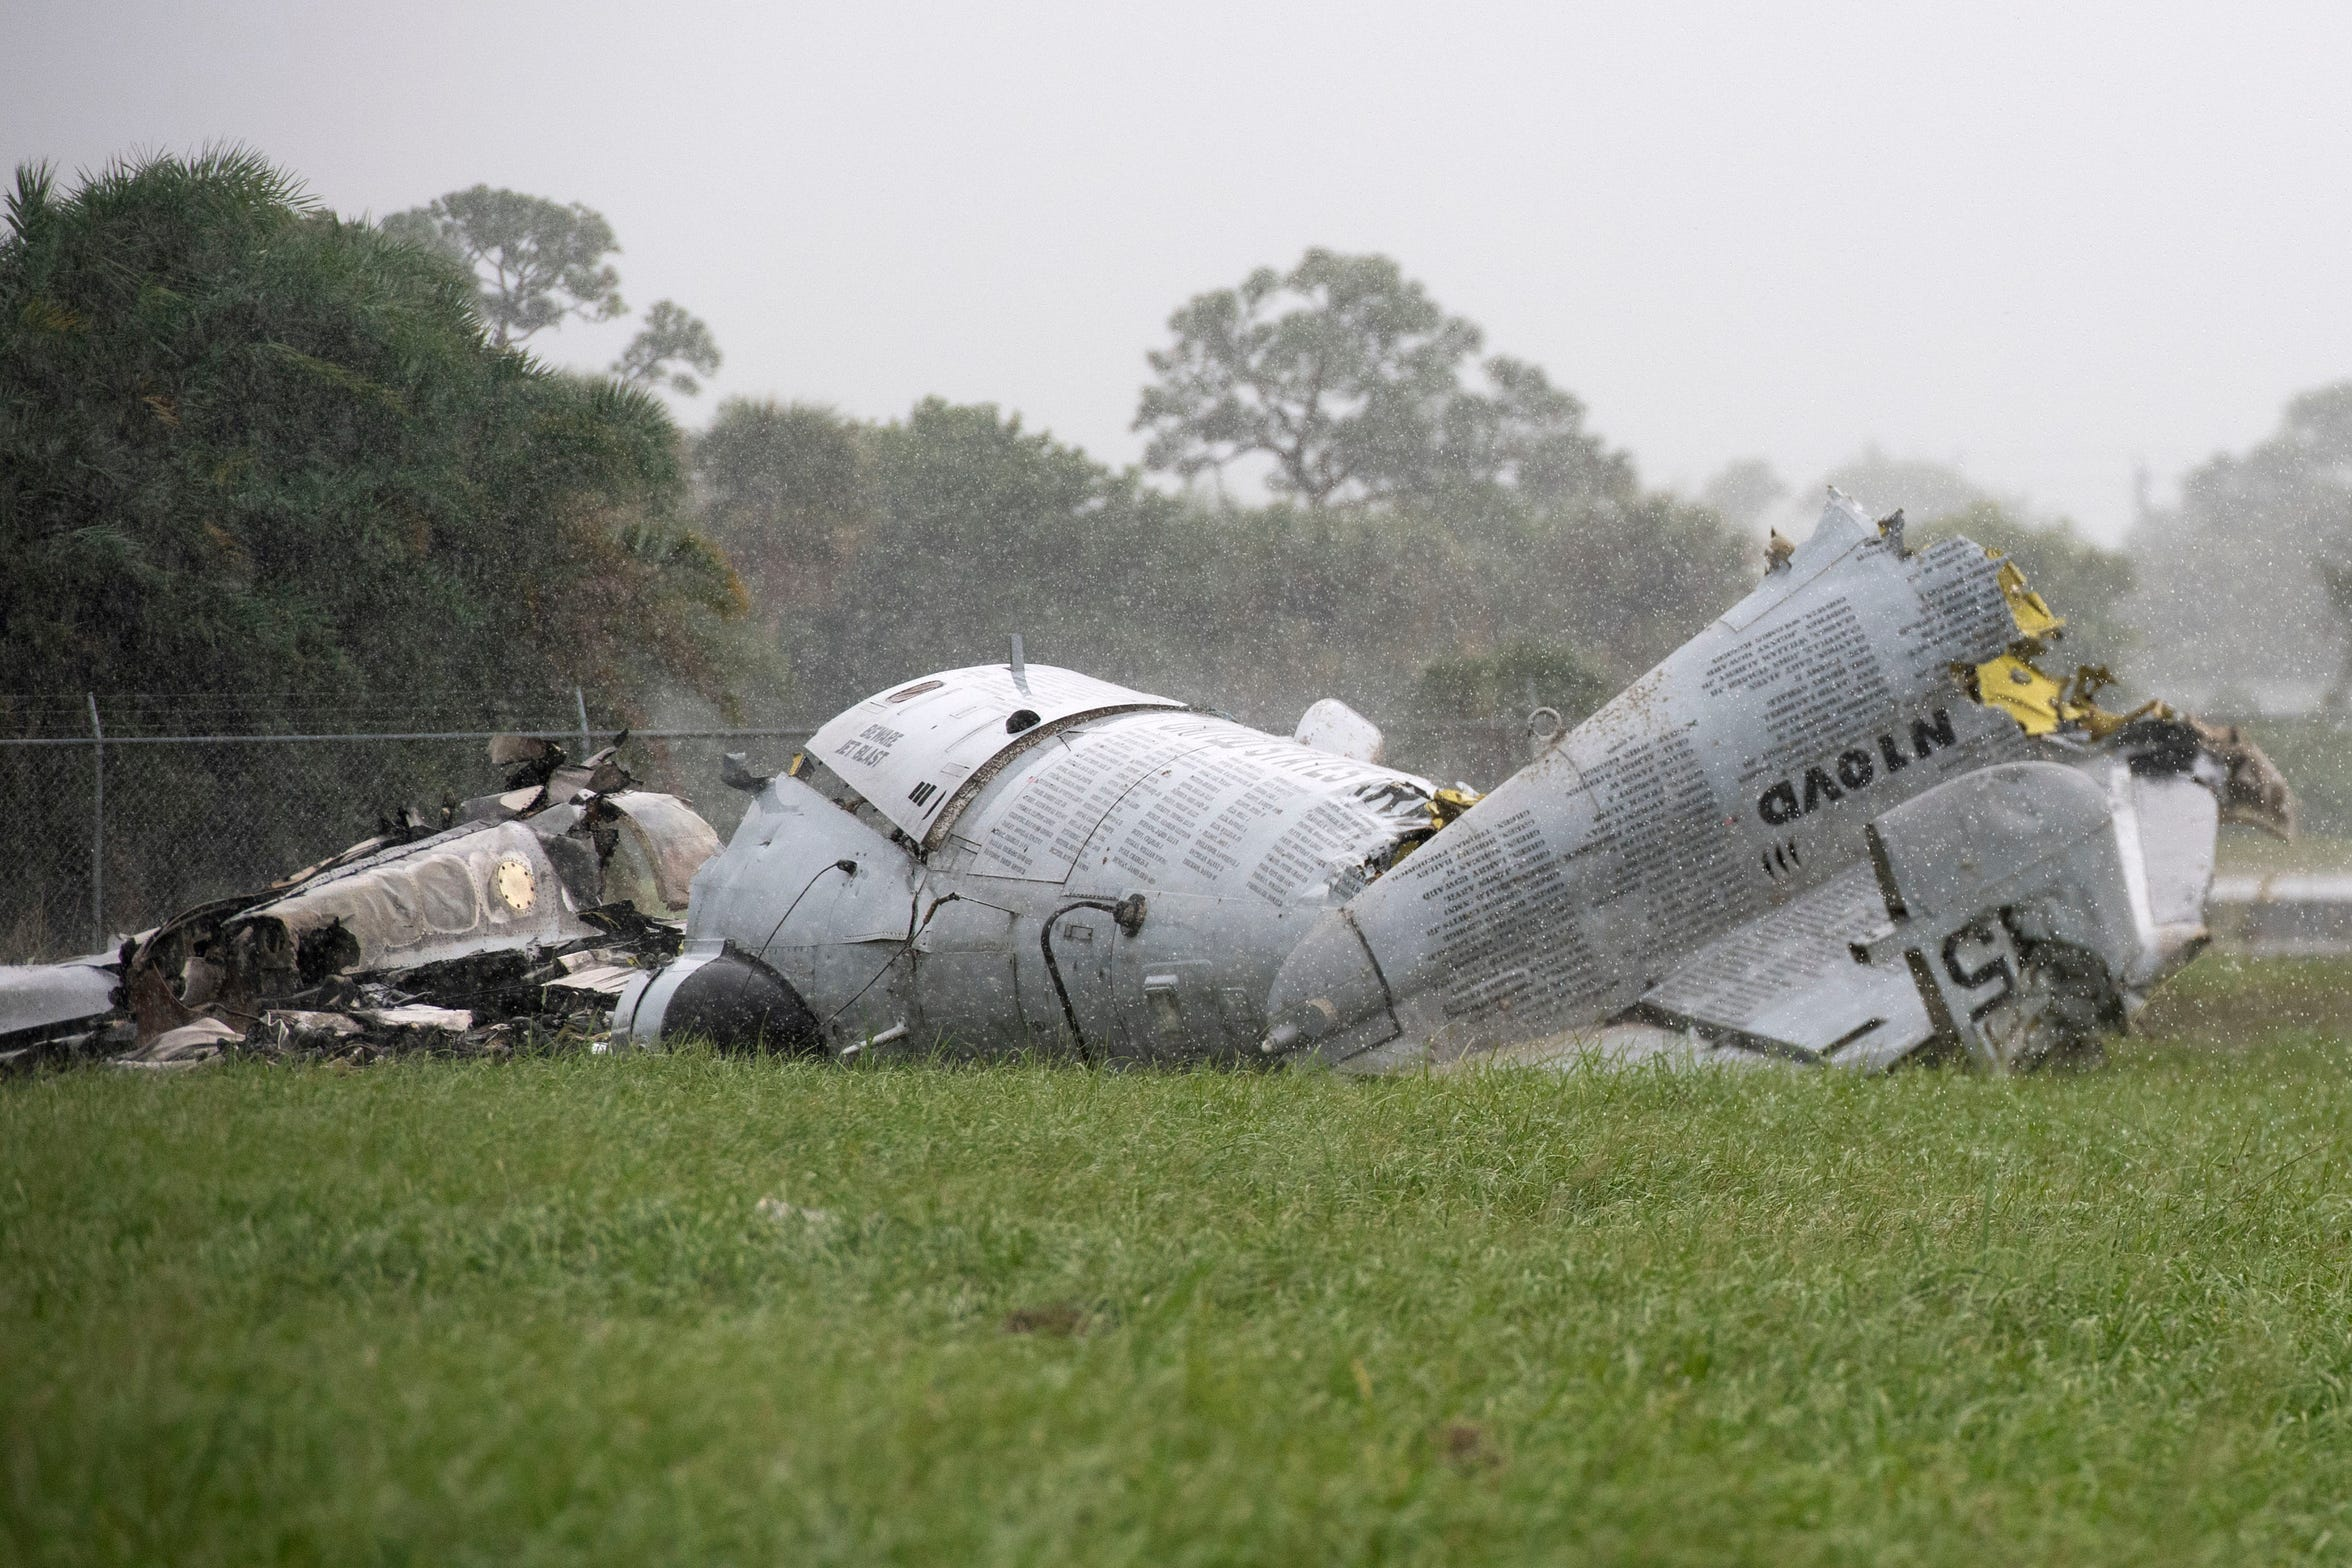 Pilot Joseph Masessa was killed in a single-plane crash ahead of the start of the Stuart Air Show on Friday, Nov. 1, 2019, at Witham Field in Stuart. The plane, a Grumann OV-1 Mohawk, was a twin-engine turboprop armed military observation and attack aircraft set to perform in the air show.